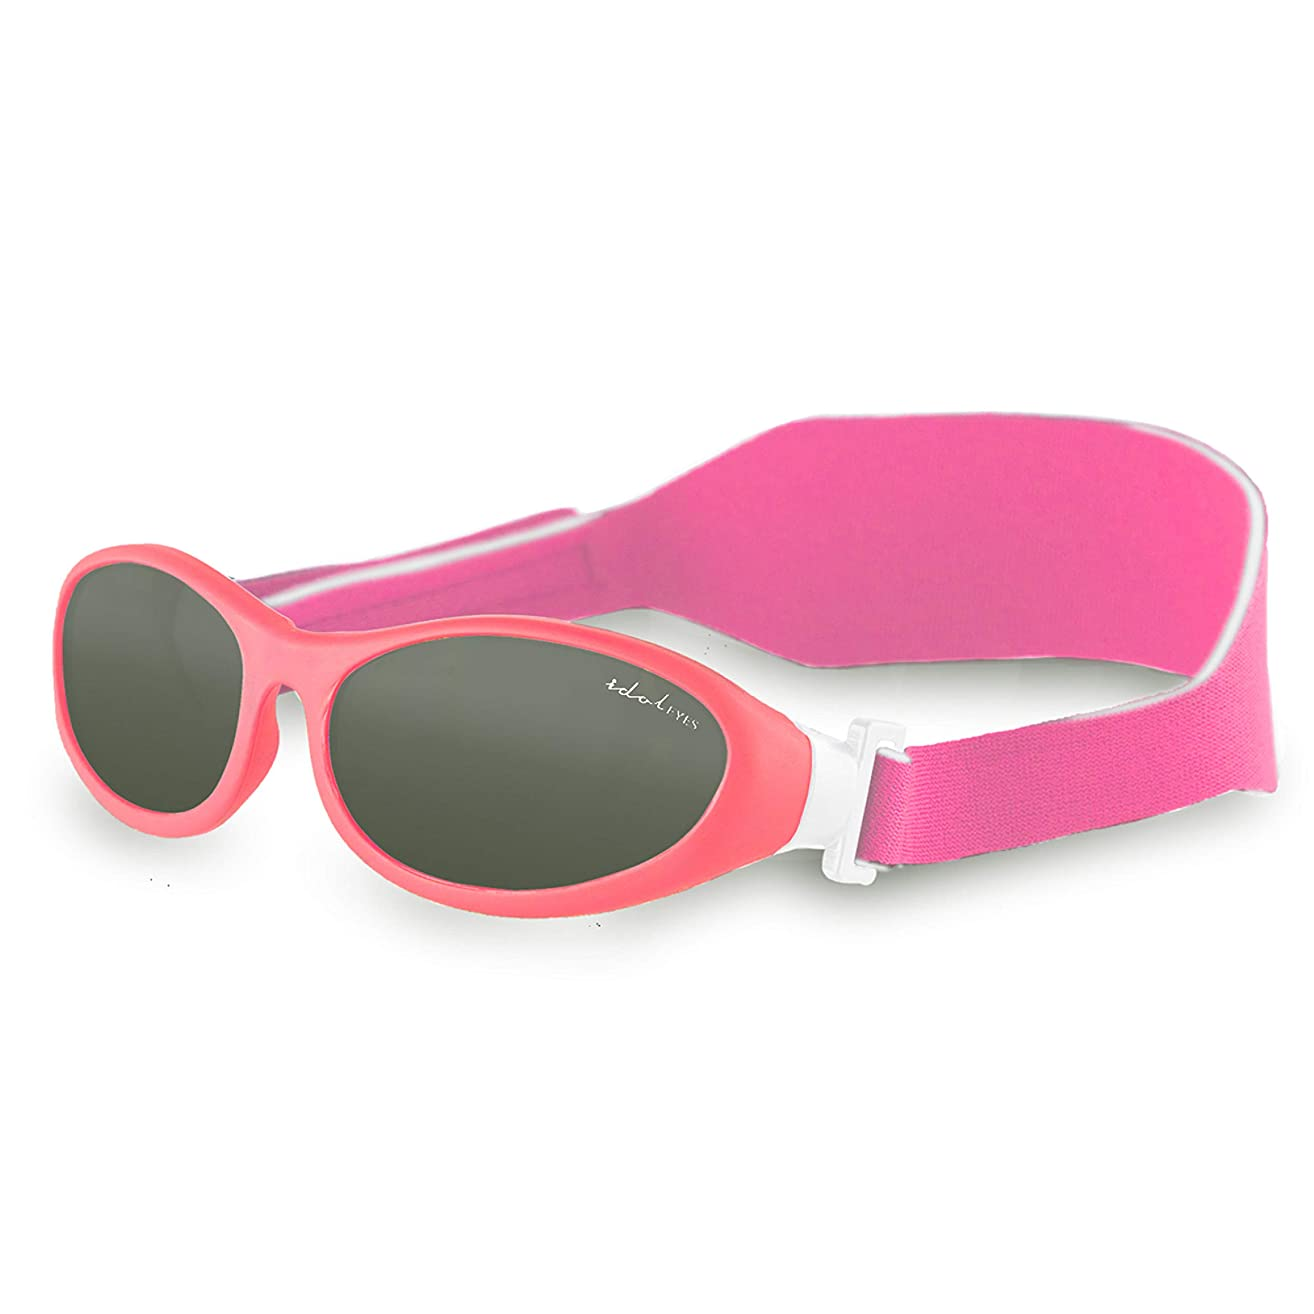 Baby Wrapz Baby Sunglasses – Toddler Sunglasses for Boys and Girls w/ 100% UV Protection - Soft Rubber Frame & Headstrap Plus Microfiber Travel Case Pink